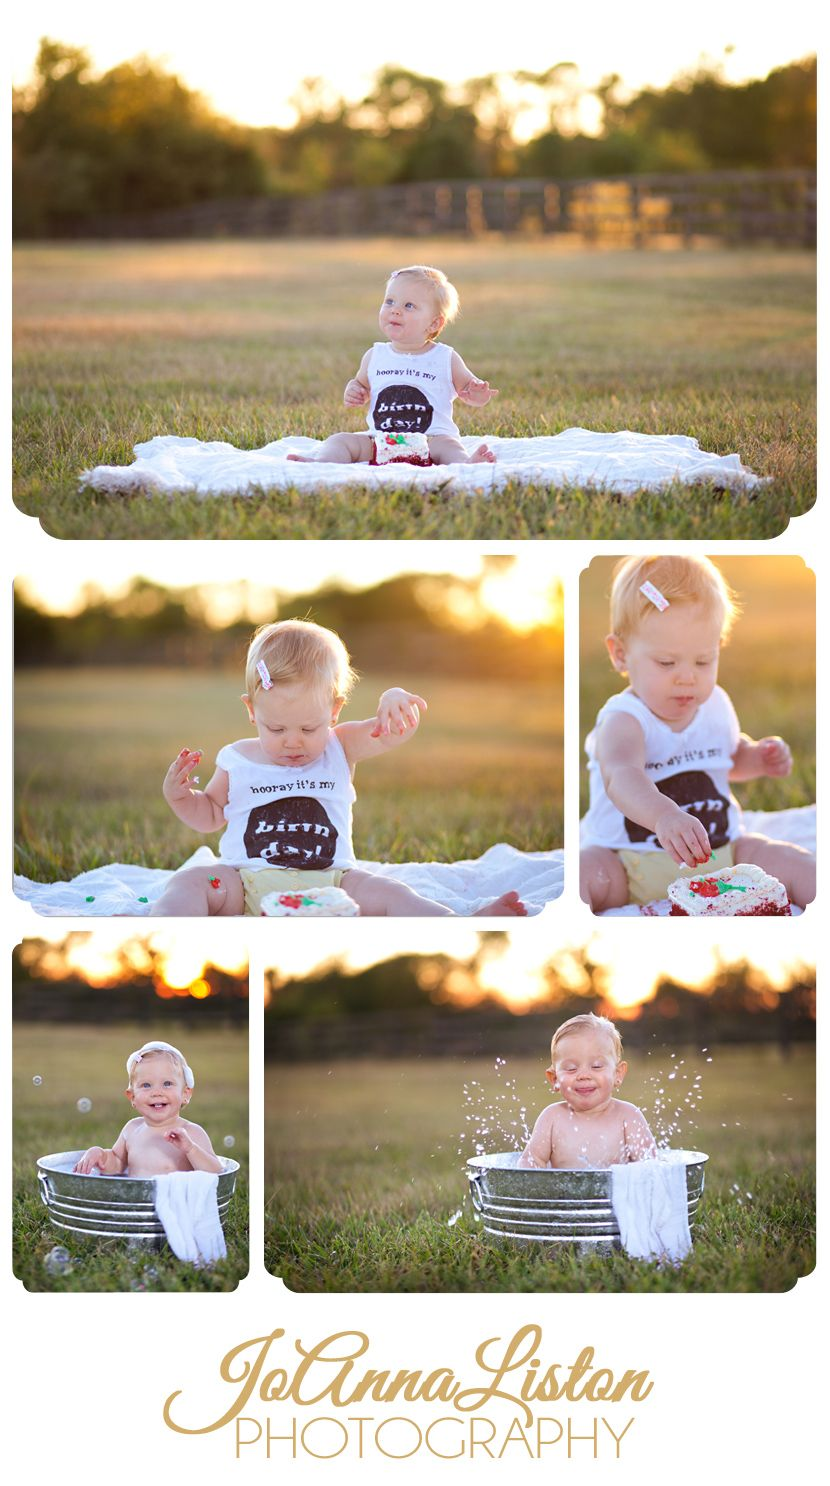 One Year Old Photo Session Outdoor Cake Smash Outdoor Baby